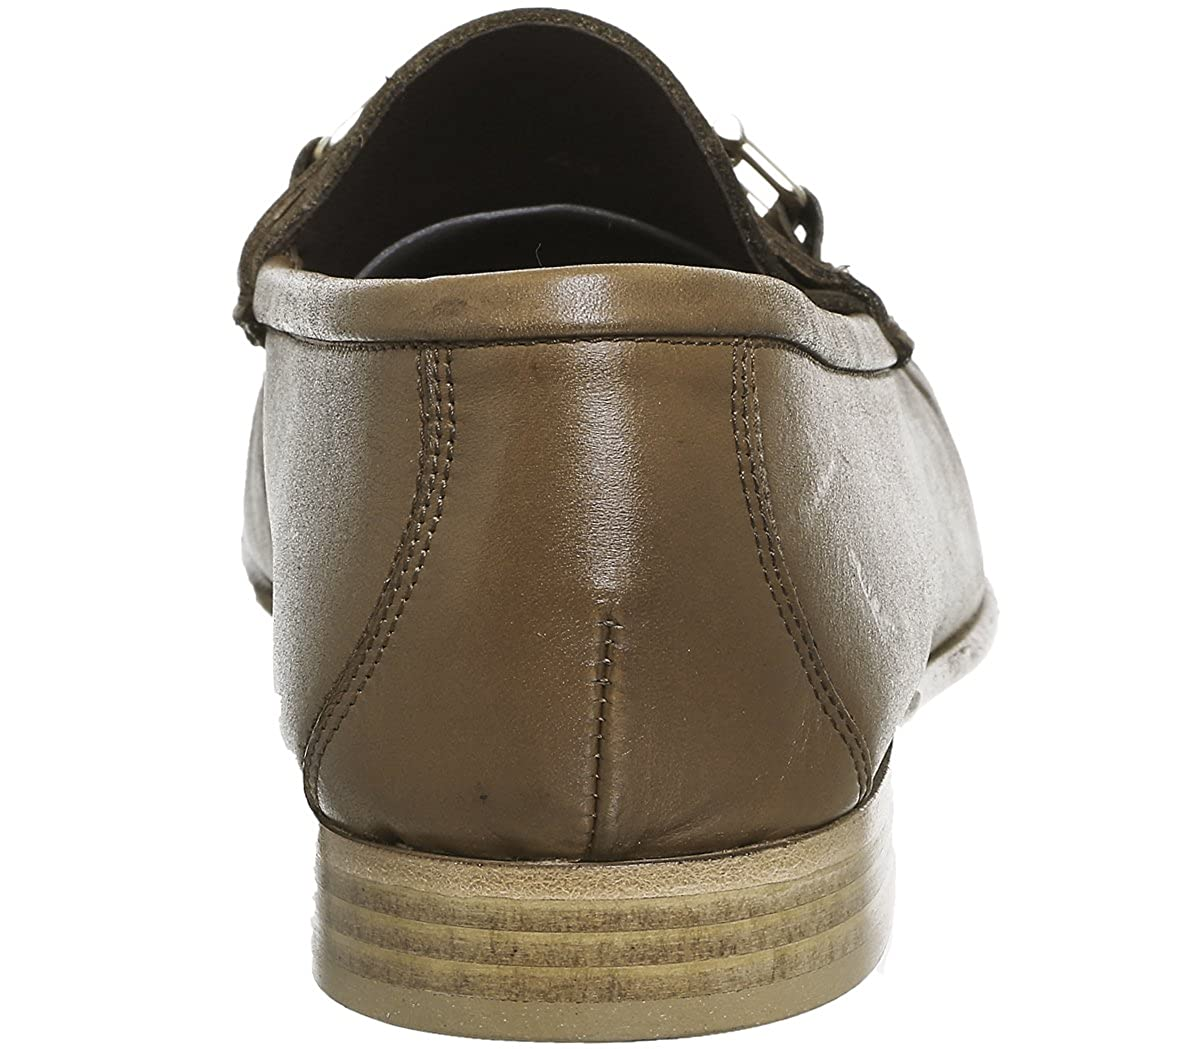 37b10a39843 Poste Famiglia Snaffle Loafers  Amazon.co.uk  Shoes   Bags